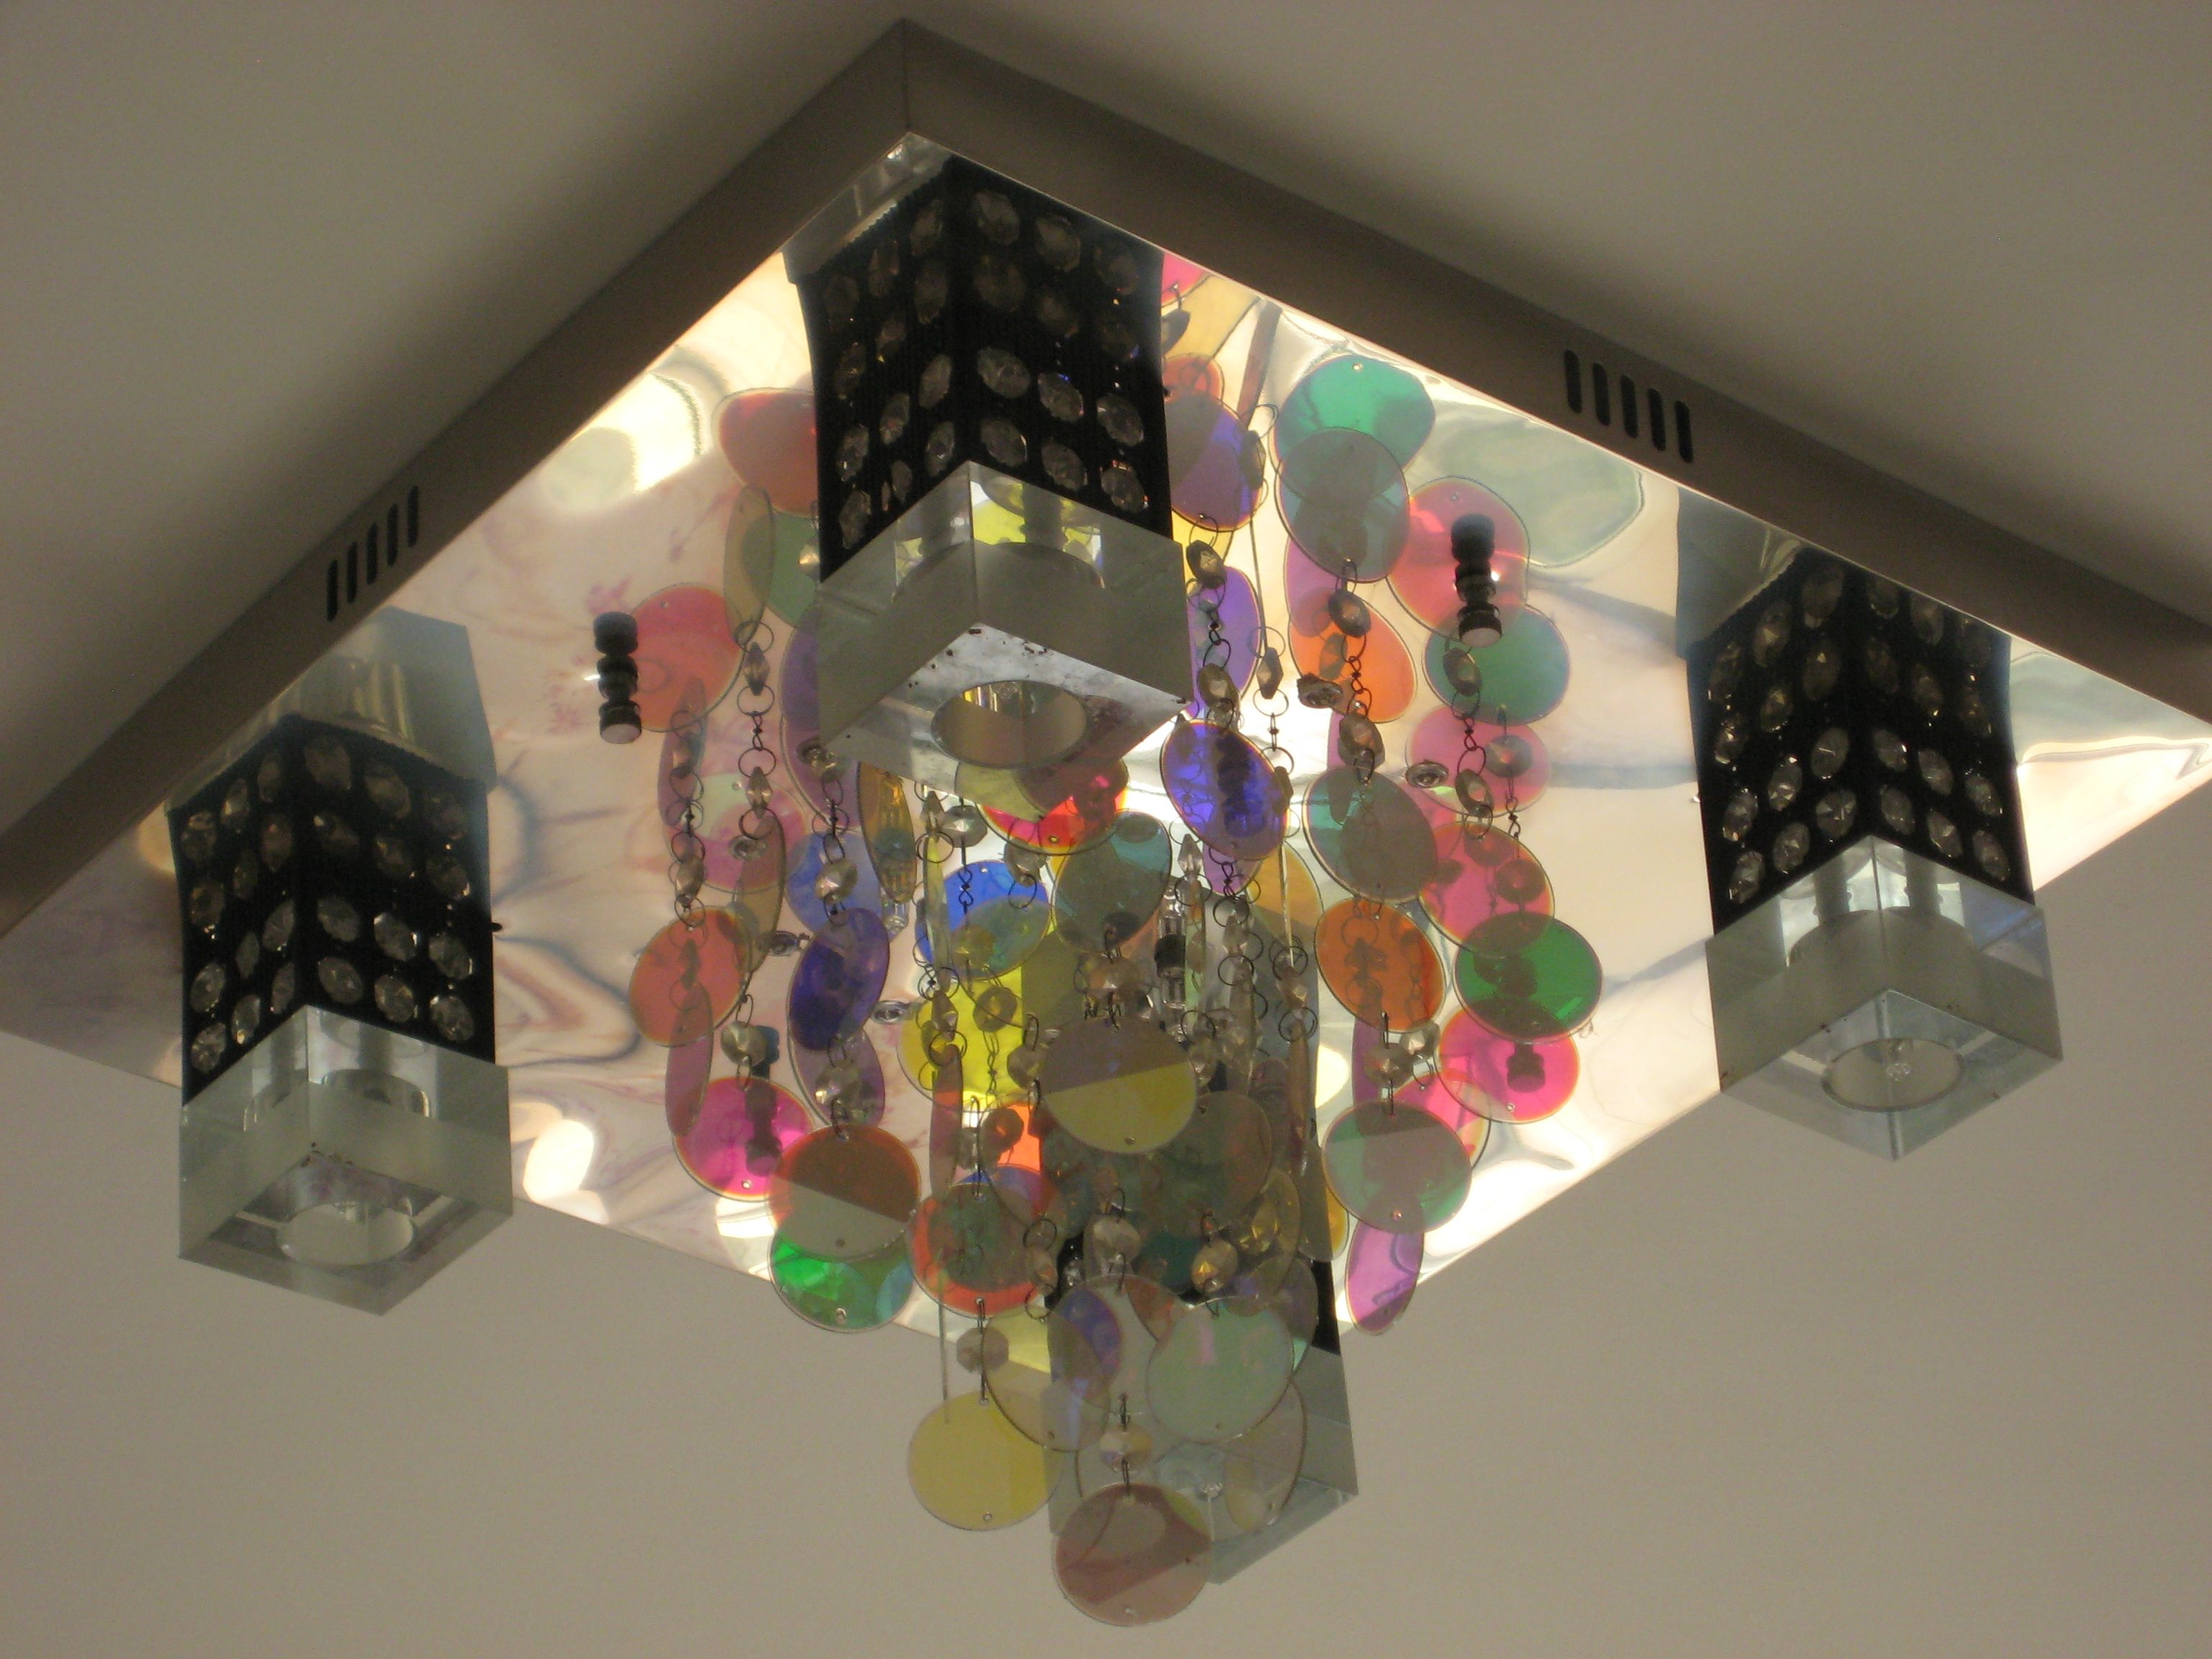 Discobal Met Licht : Light fixture extraodinaire! this is like a lava lamp meets disco